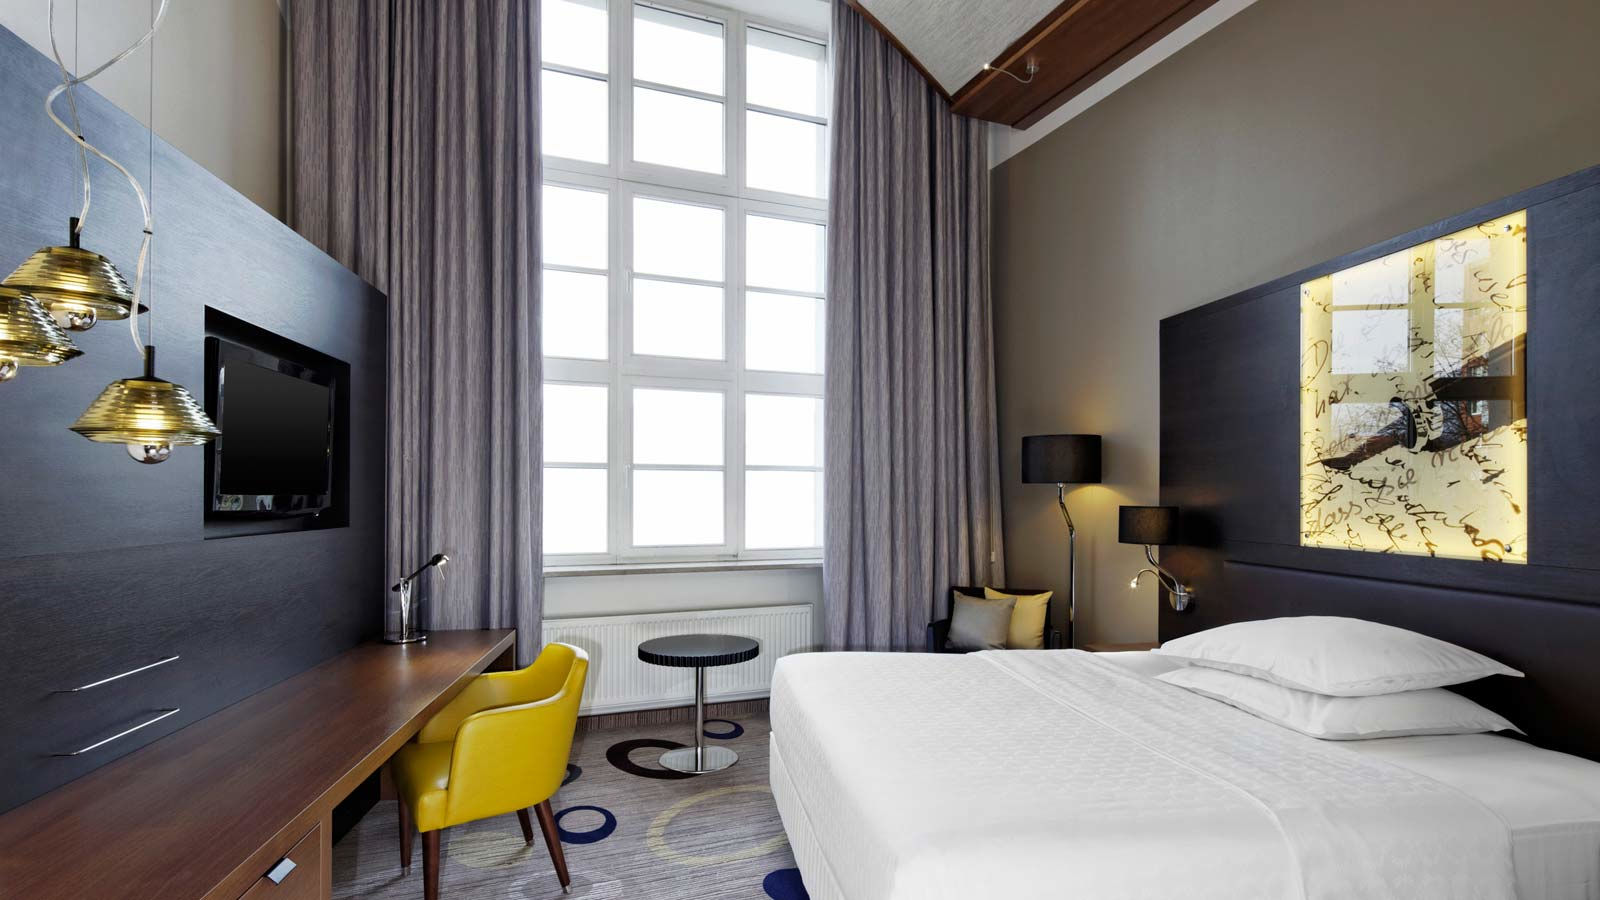 Design Hotel Hannover Pelikan Suite Hotel Hanover S Highlight